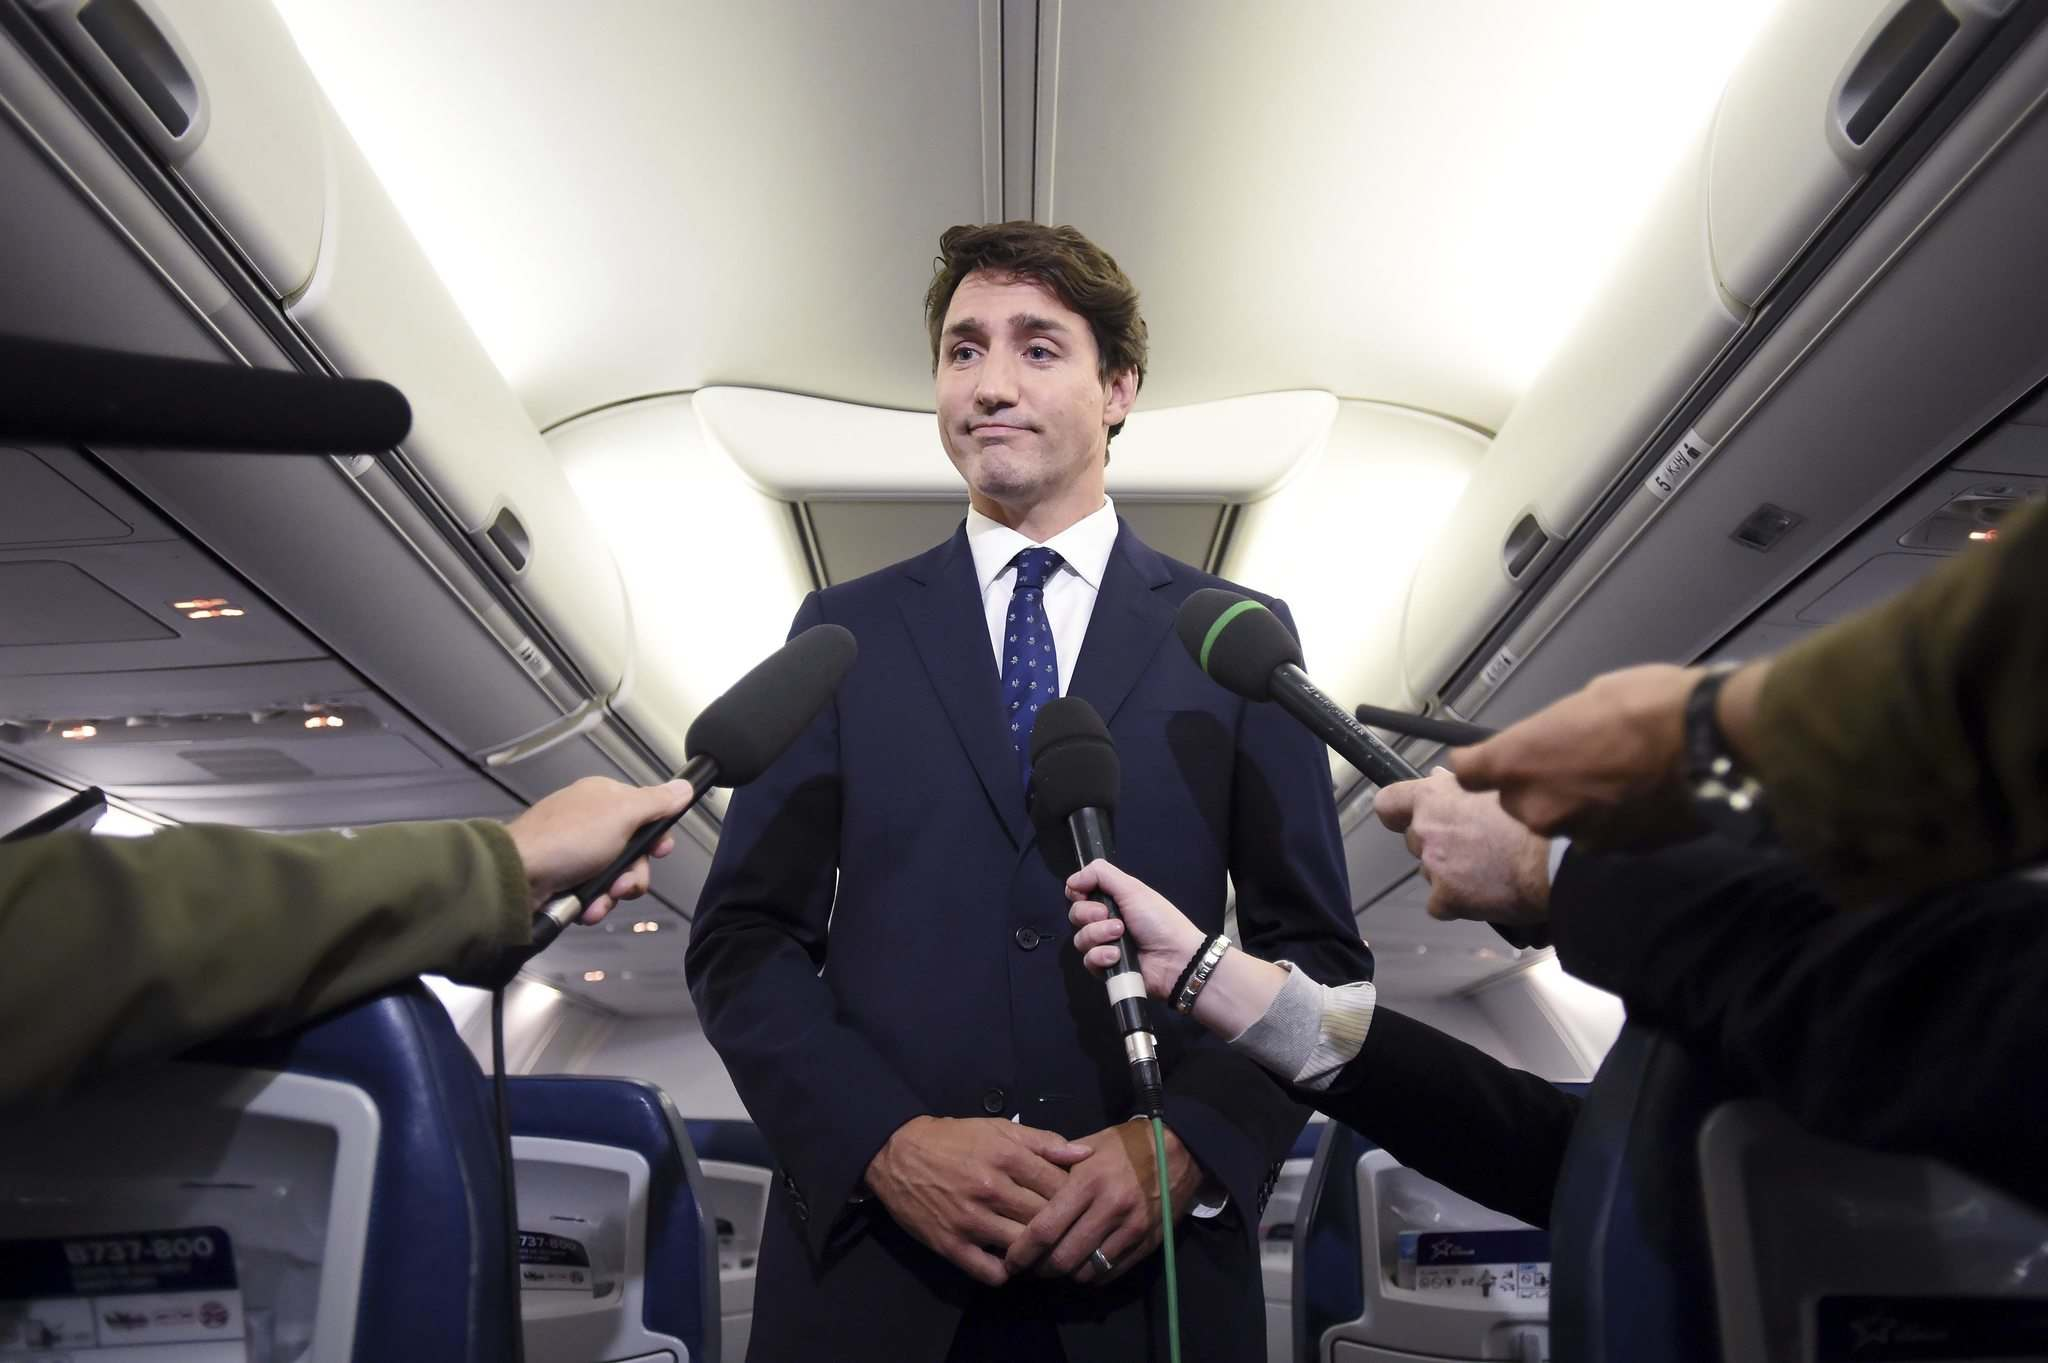 The federal Liberal party's re-election campaign was sent reeling in the span of less than 24 hours by the disclosure of not one, not two, but three separate images showing leader Justin Trudeau in black- or brown-face makeup. (Sean Kilpatrick / The Canadian Press)